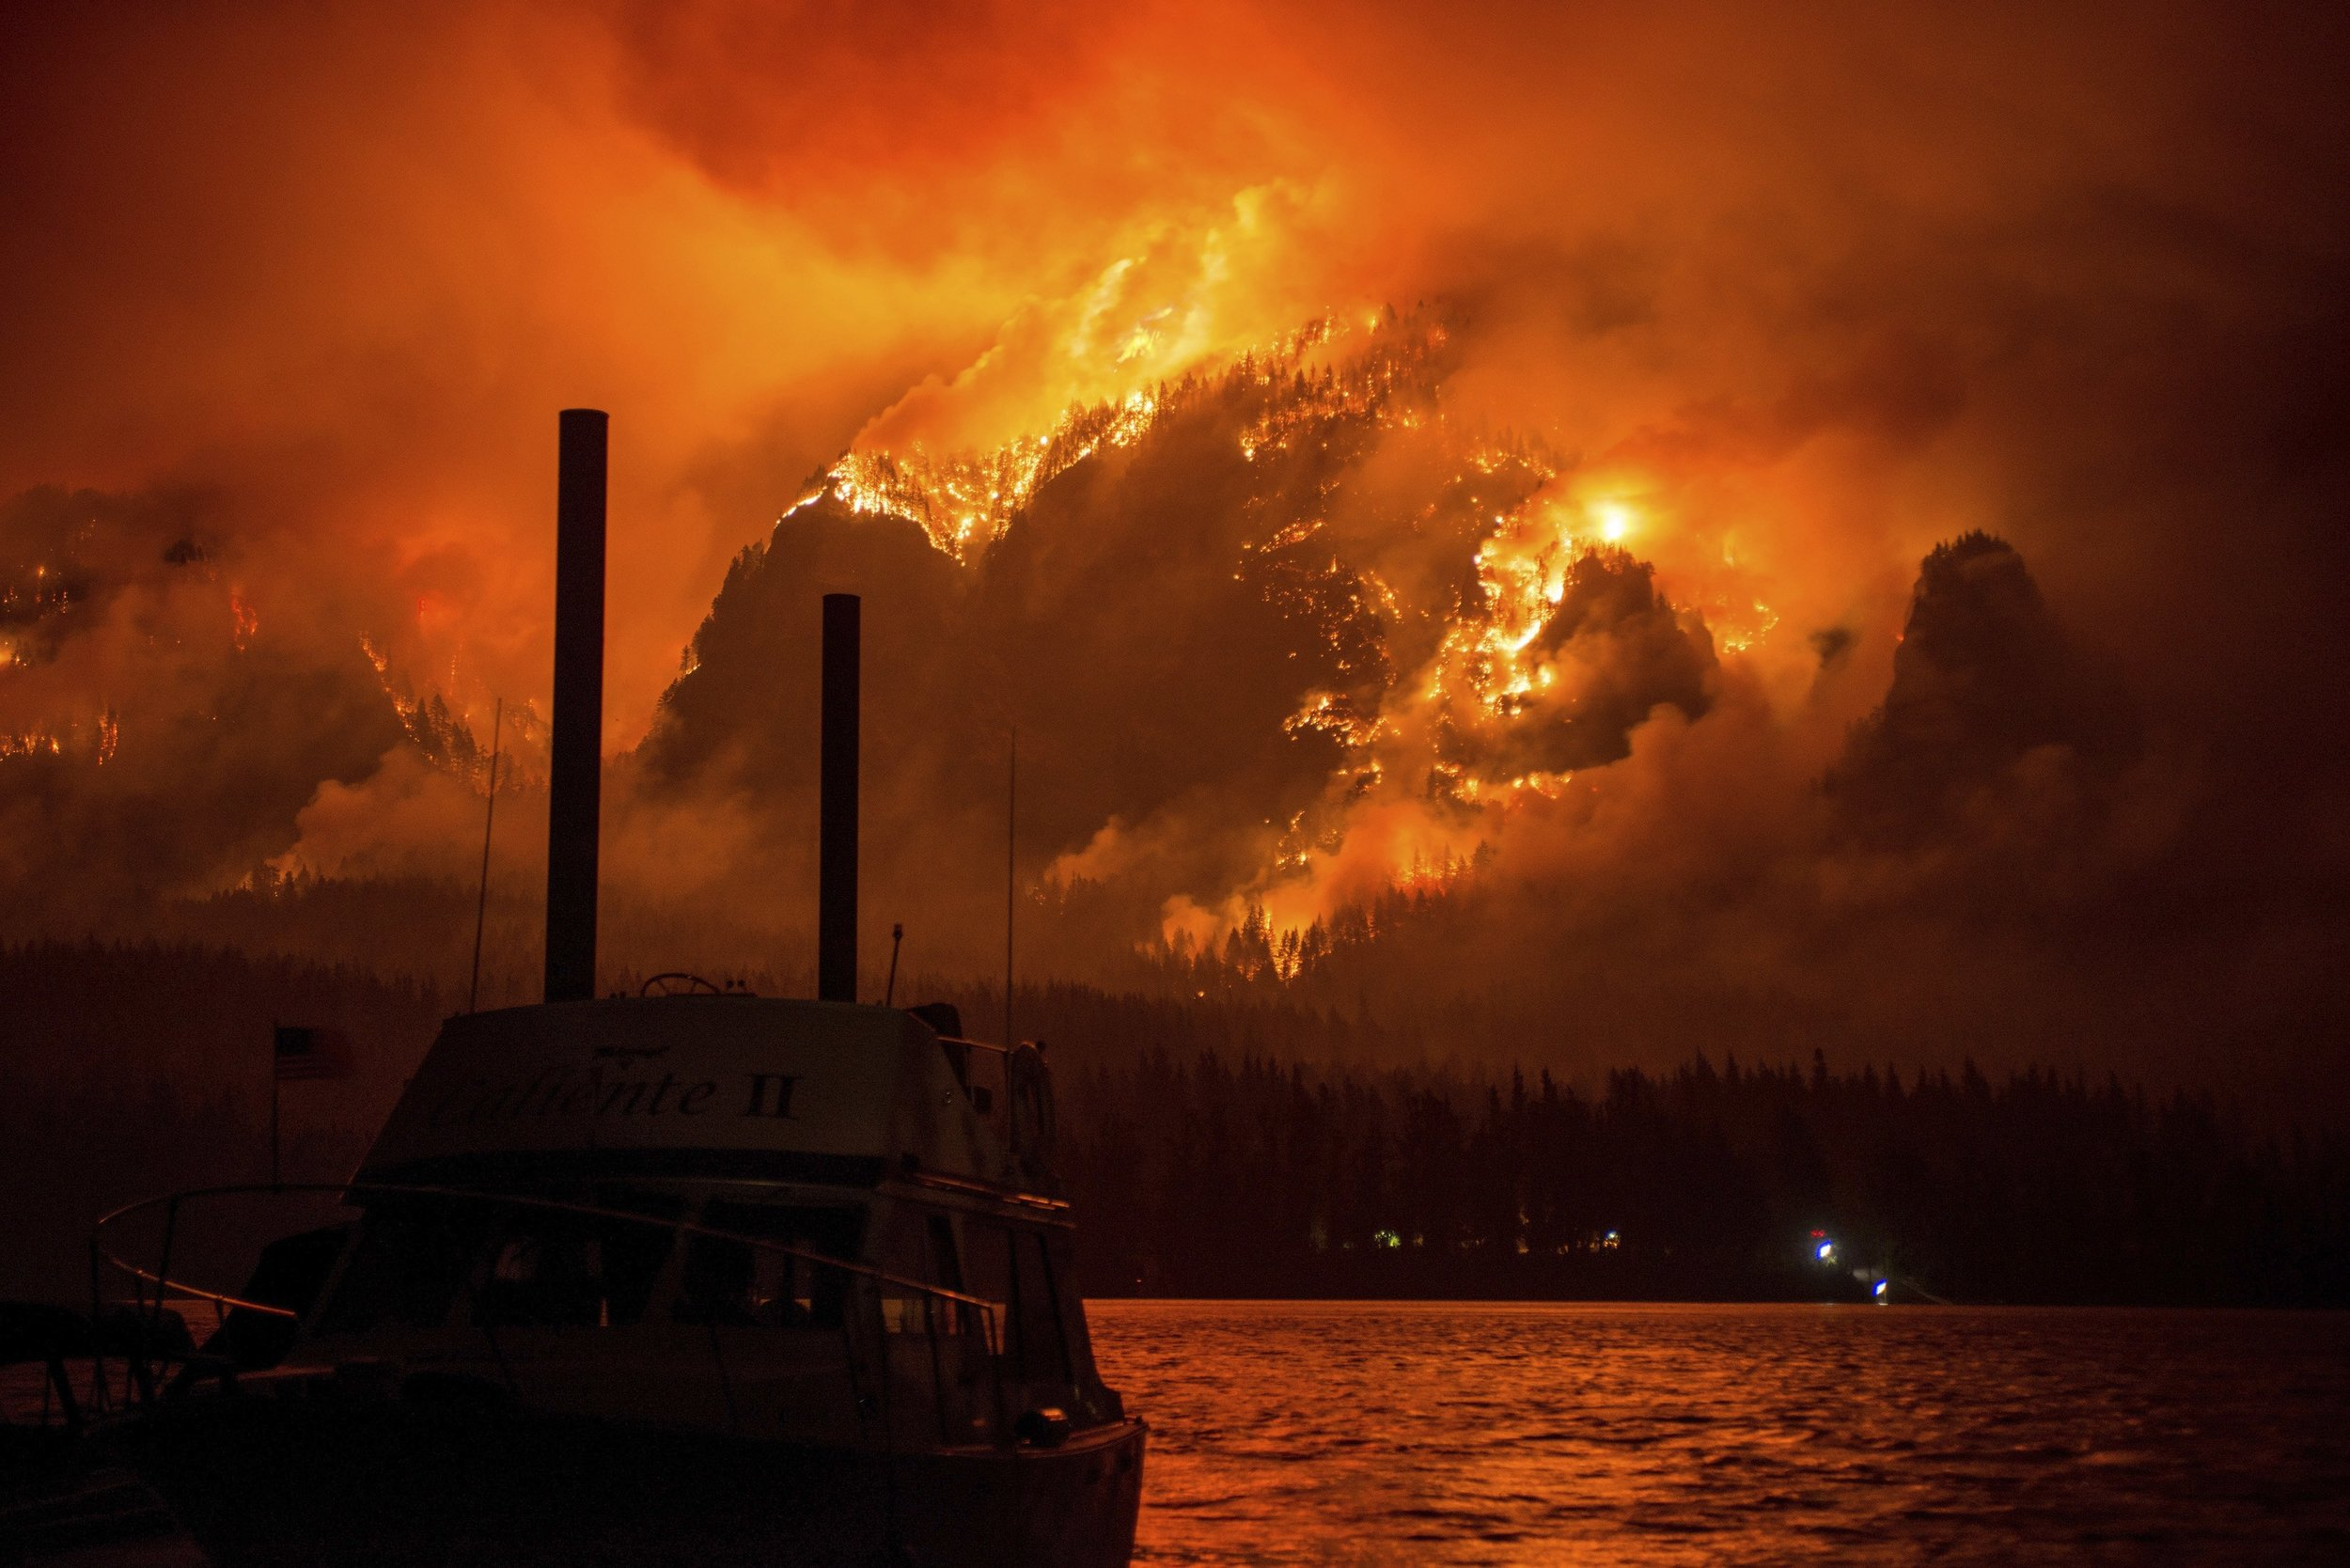 Eagle Creek Wildfire. Image courtesy of  Tristan Fortsch  and  KATU News